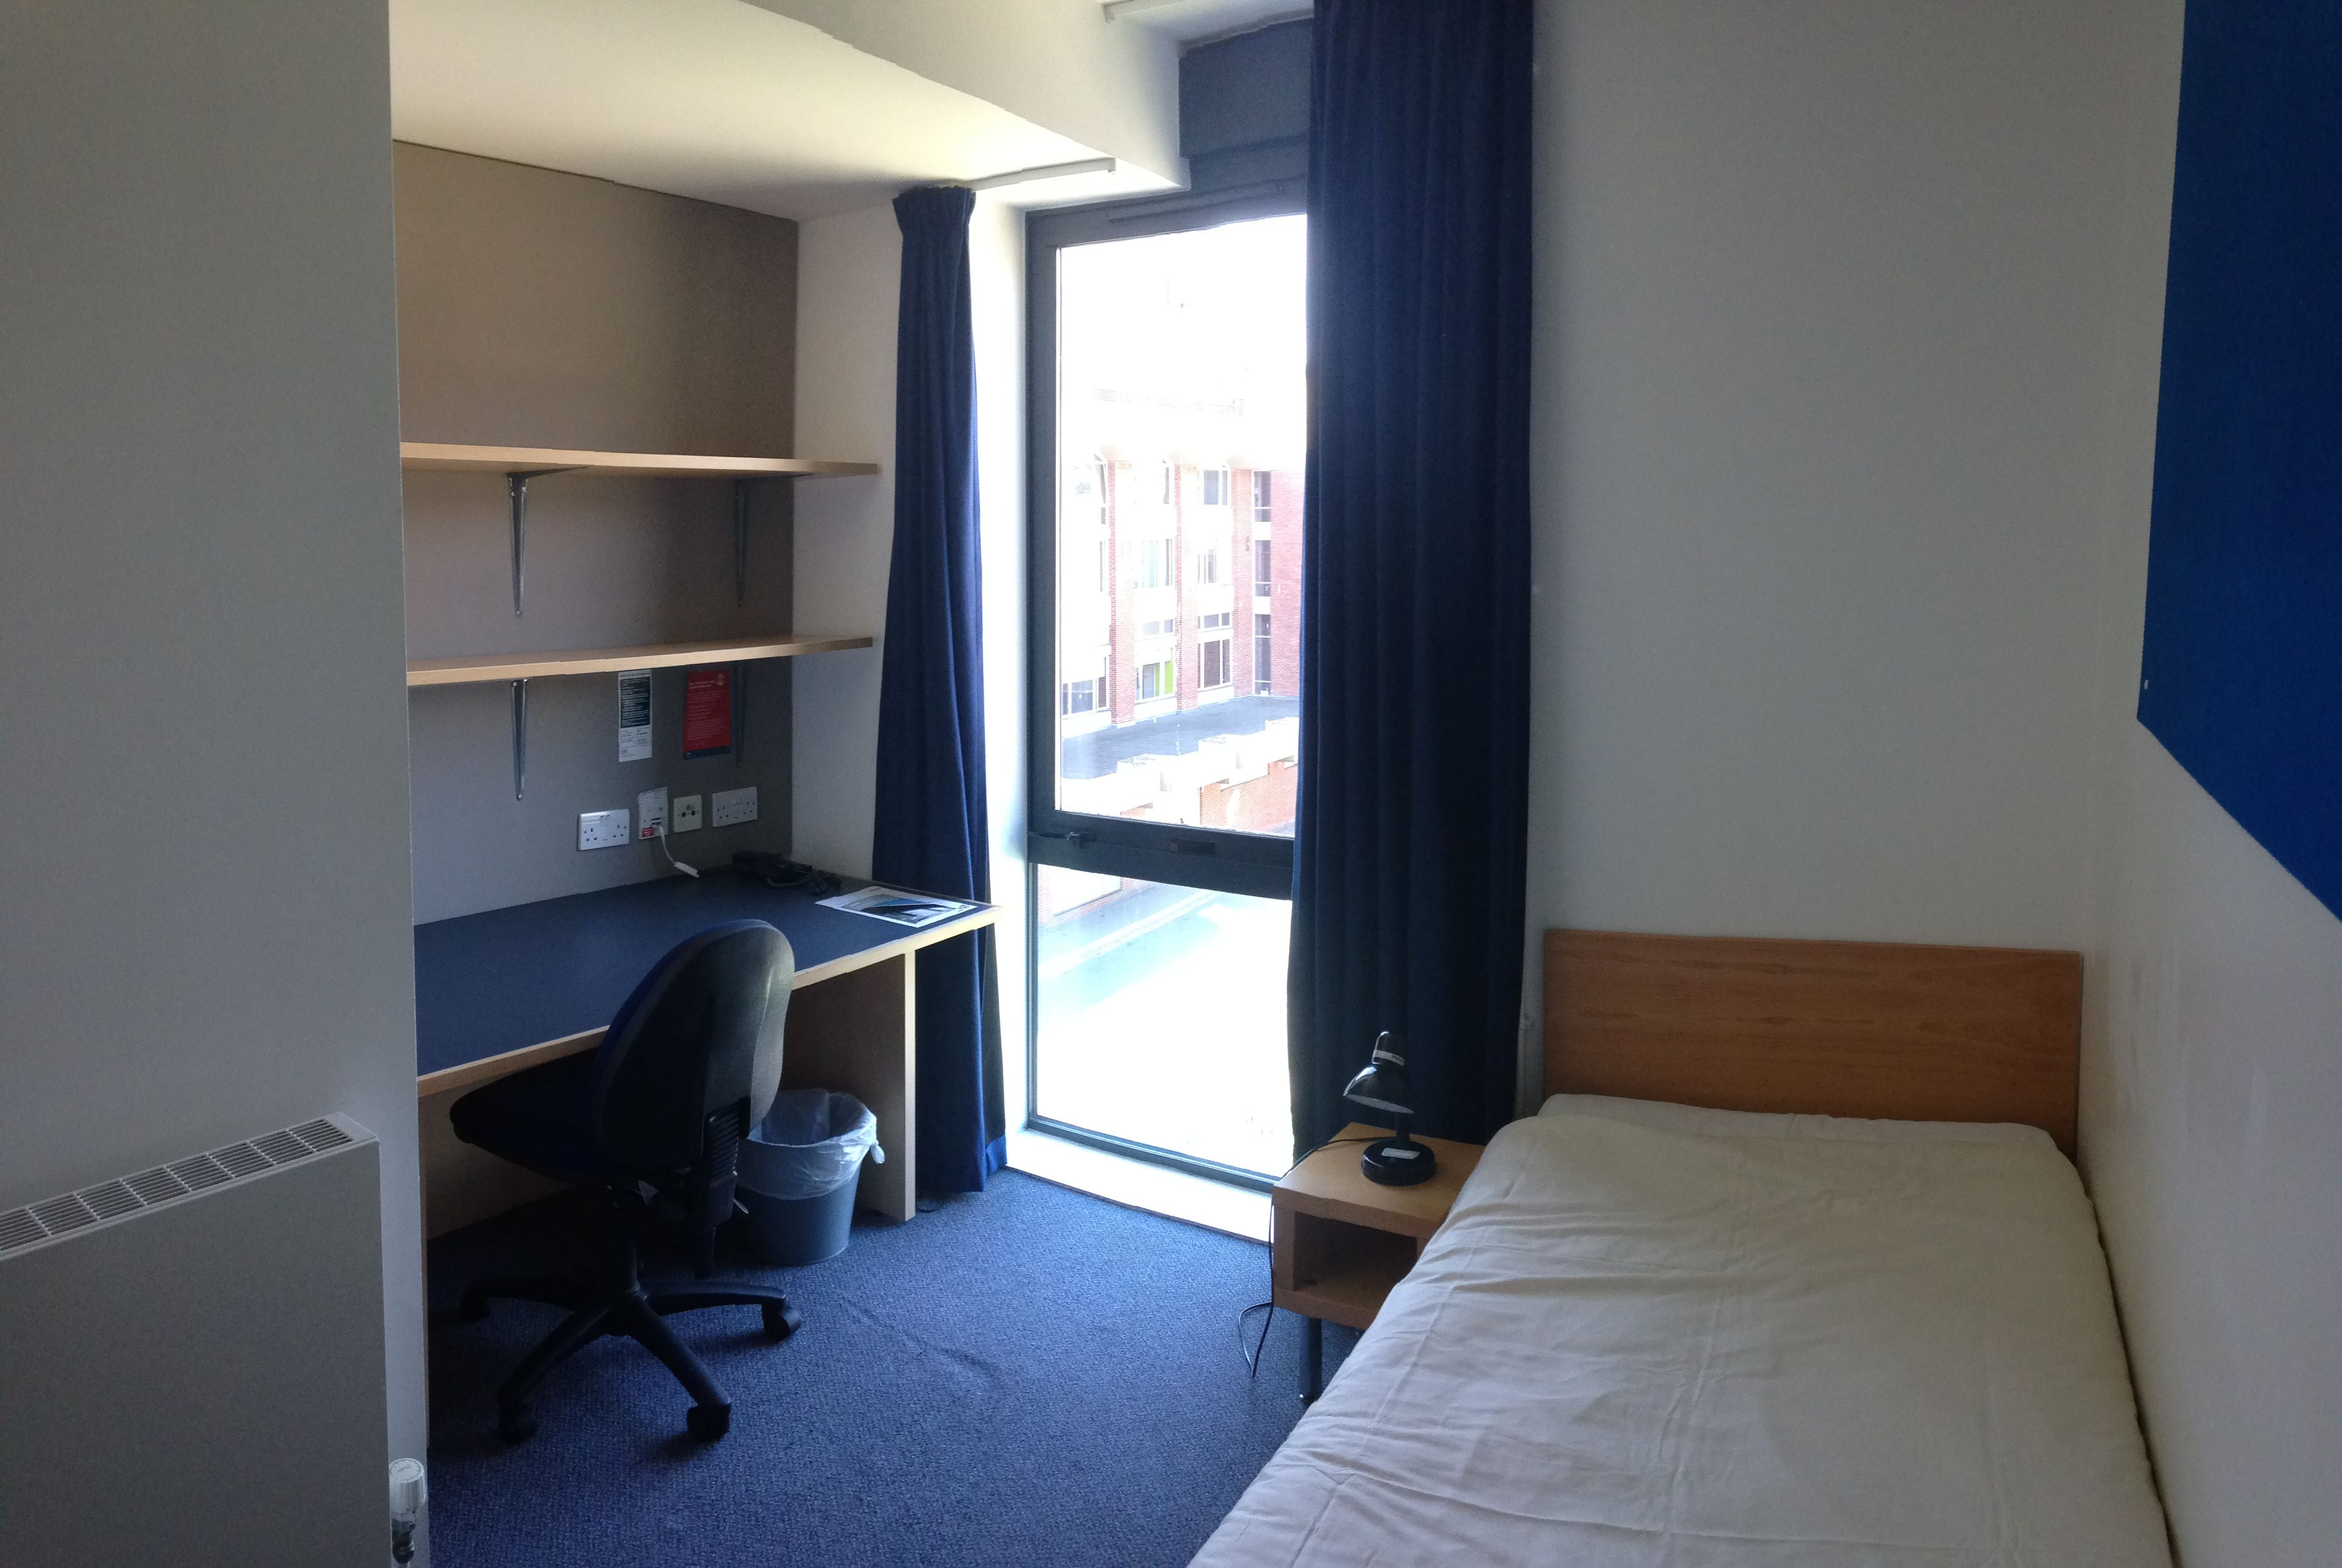 A Typical Single Room In Swanborough University Rooms University Accommodation Lounge Areas